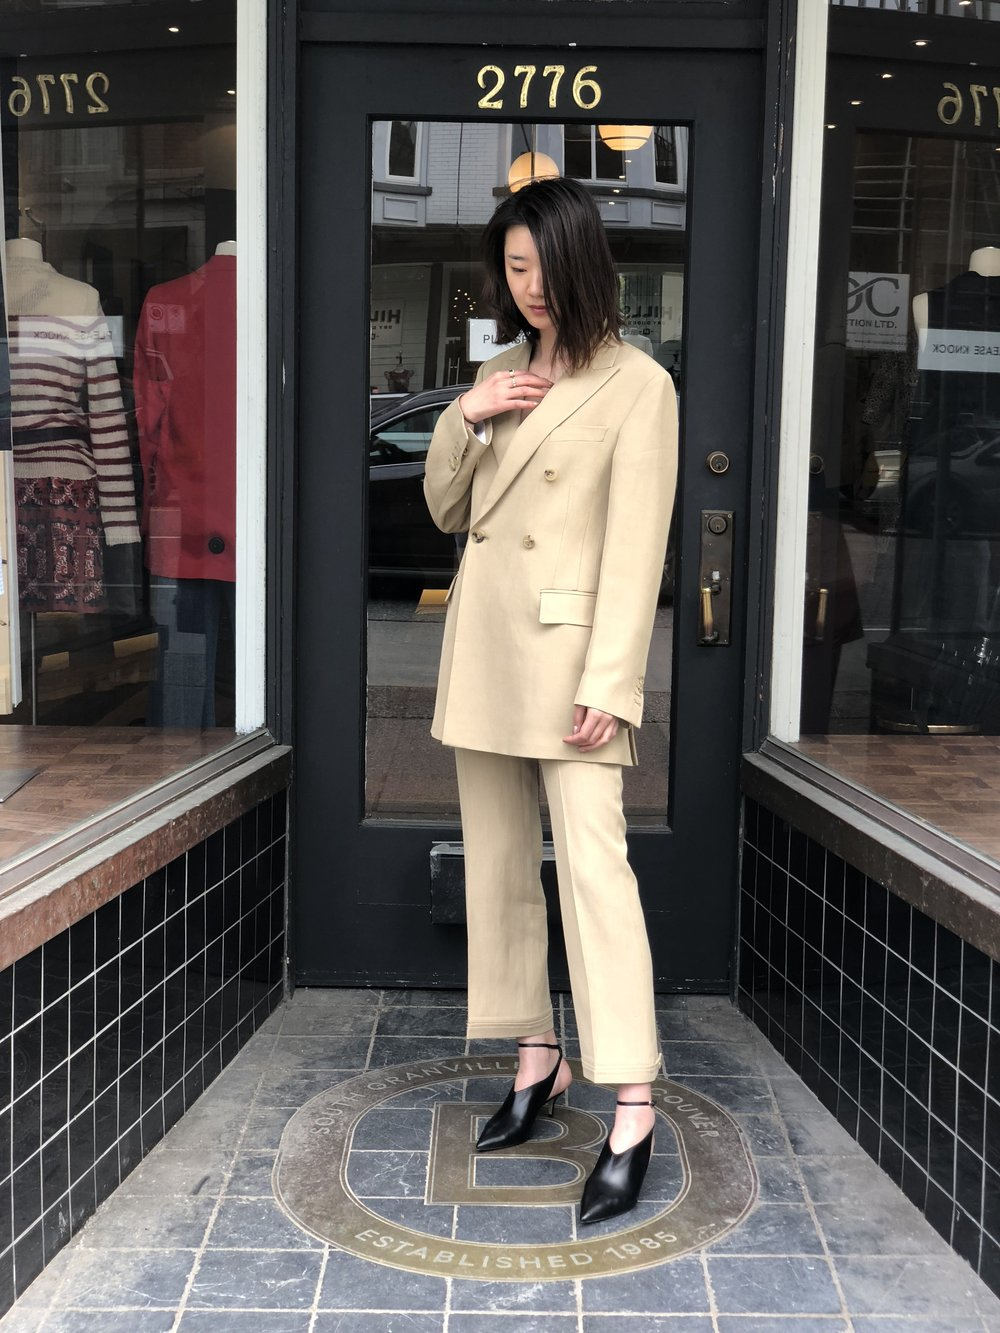 Outfit #2 is this buttery Golden Goose suit plus with Paul Andrew shoes.